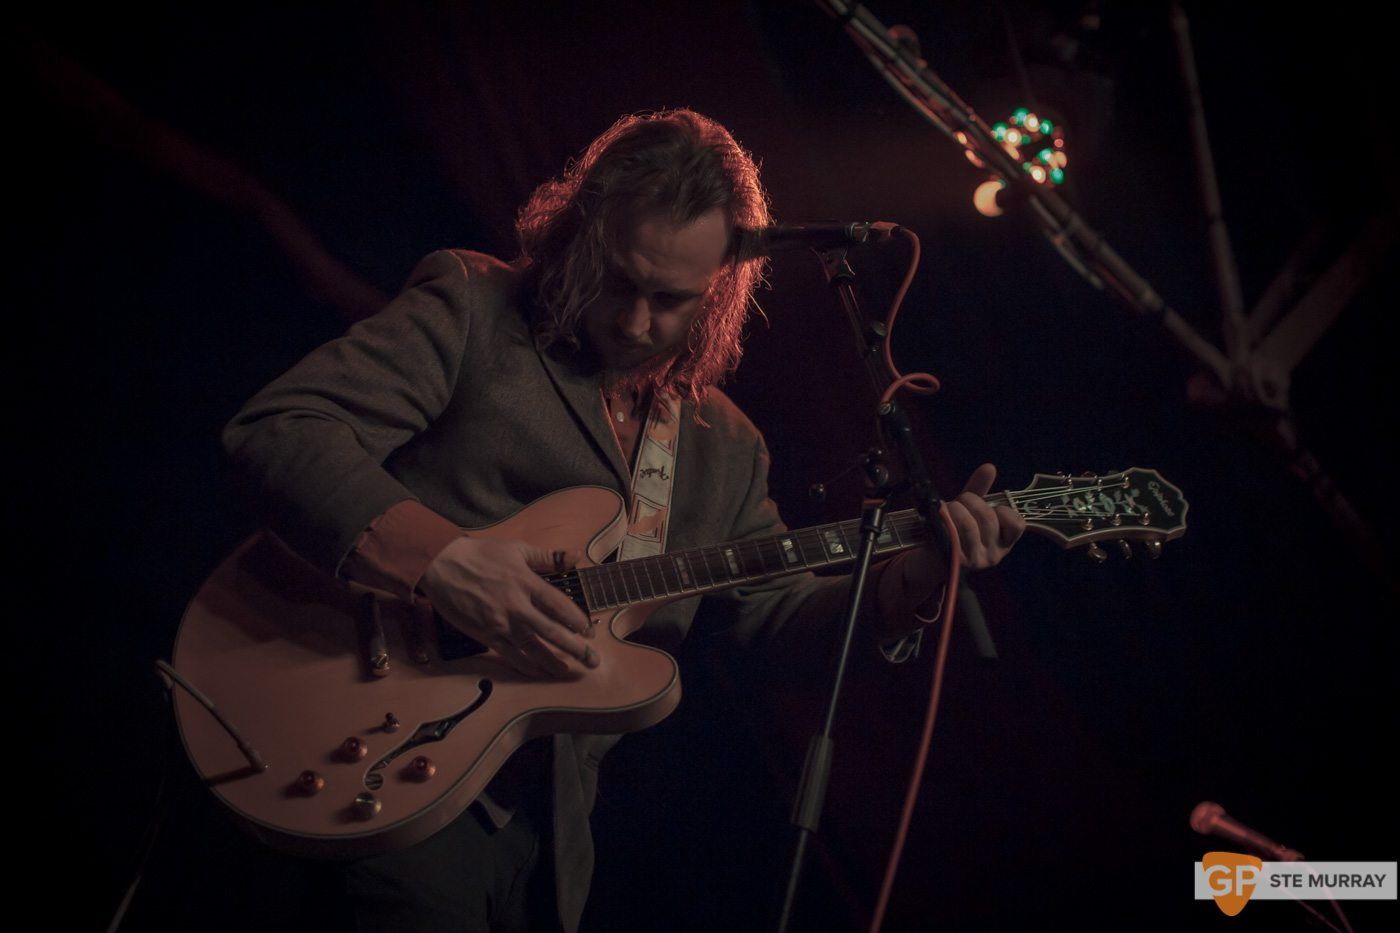 Willy Mason at The Grand Social by Ste Murray